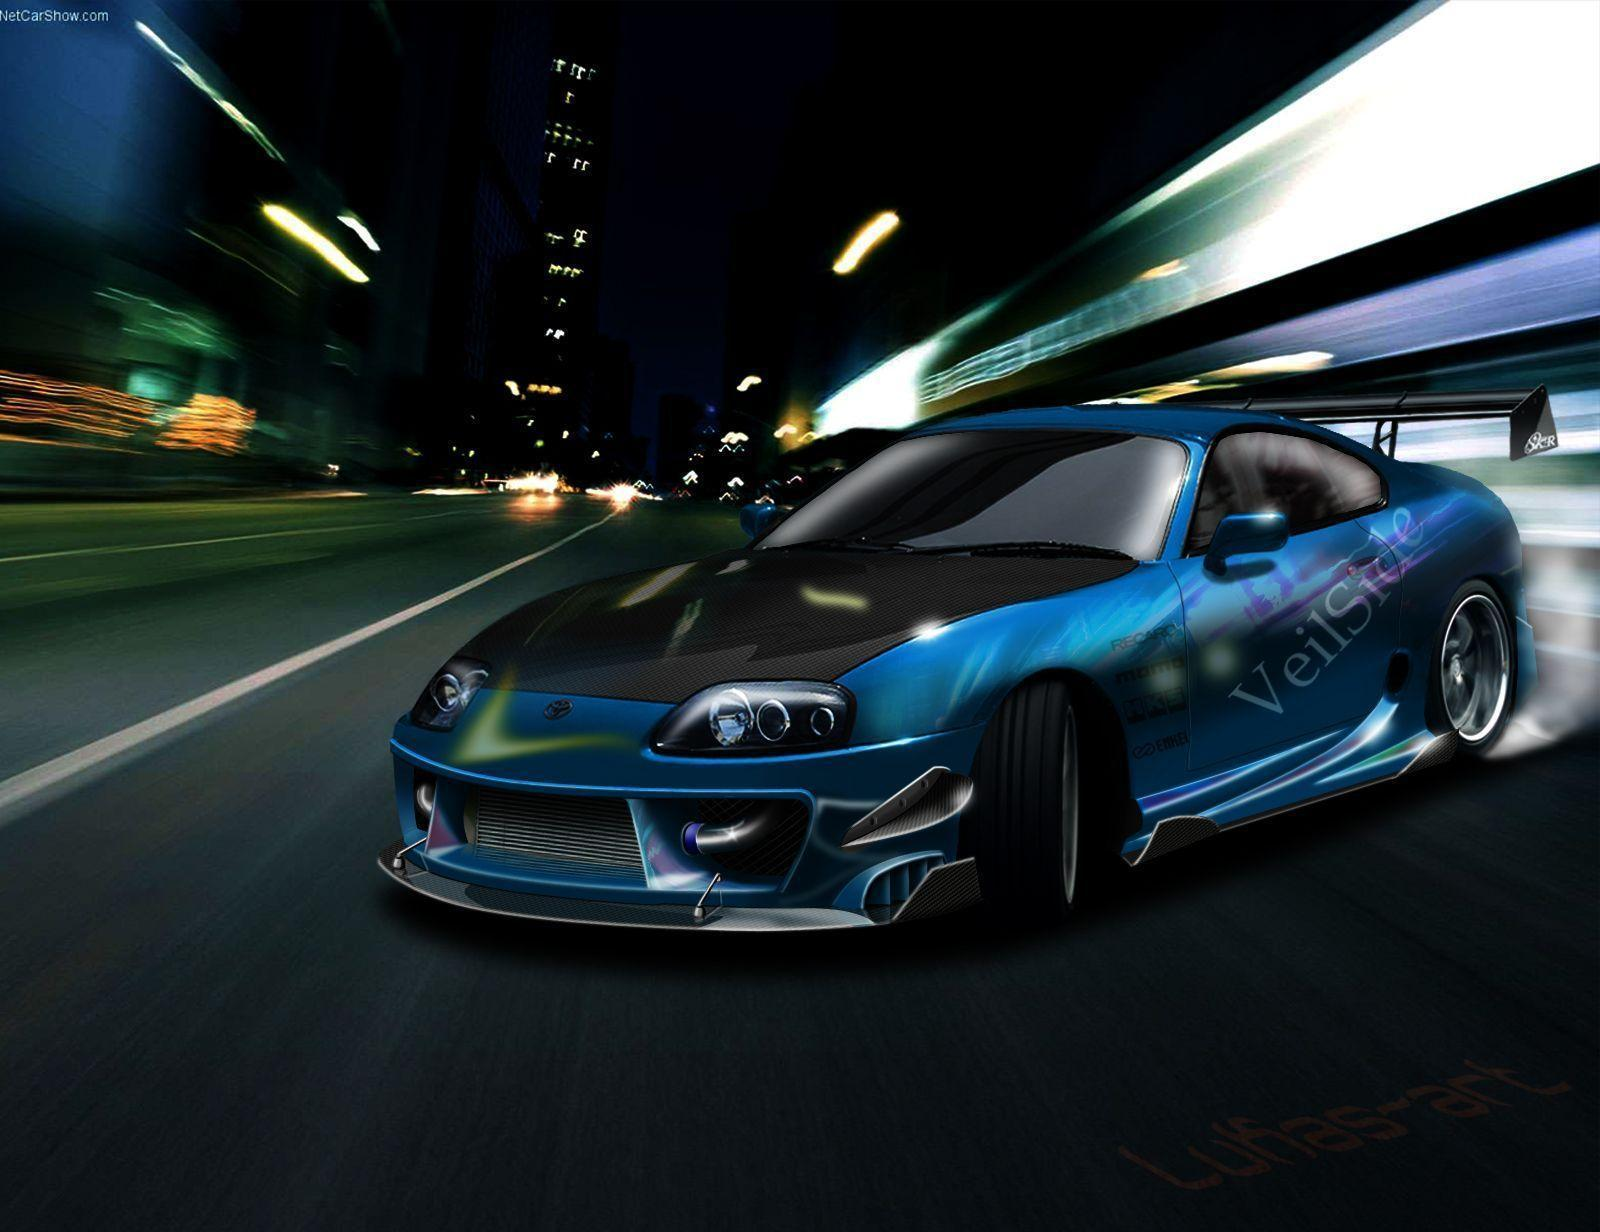 Drifting Cars Wallpaper : HD Wallpapers